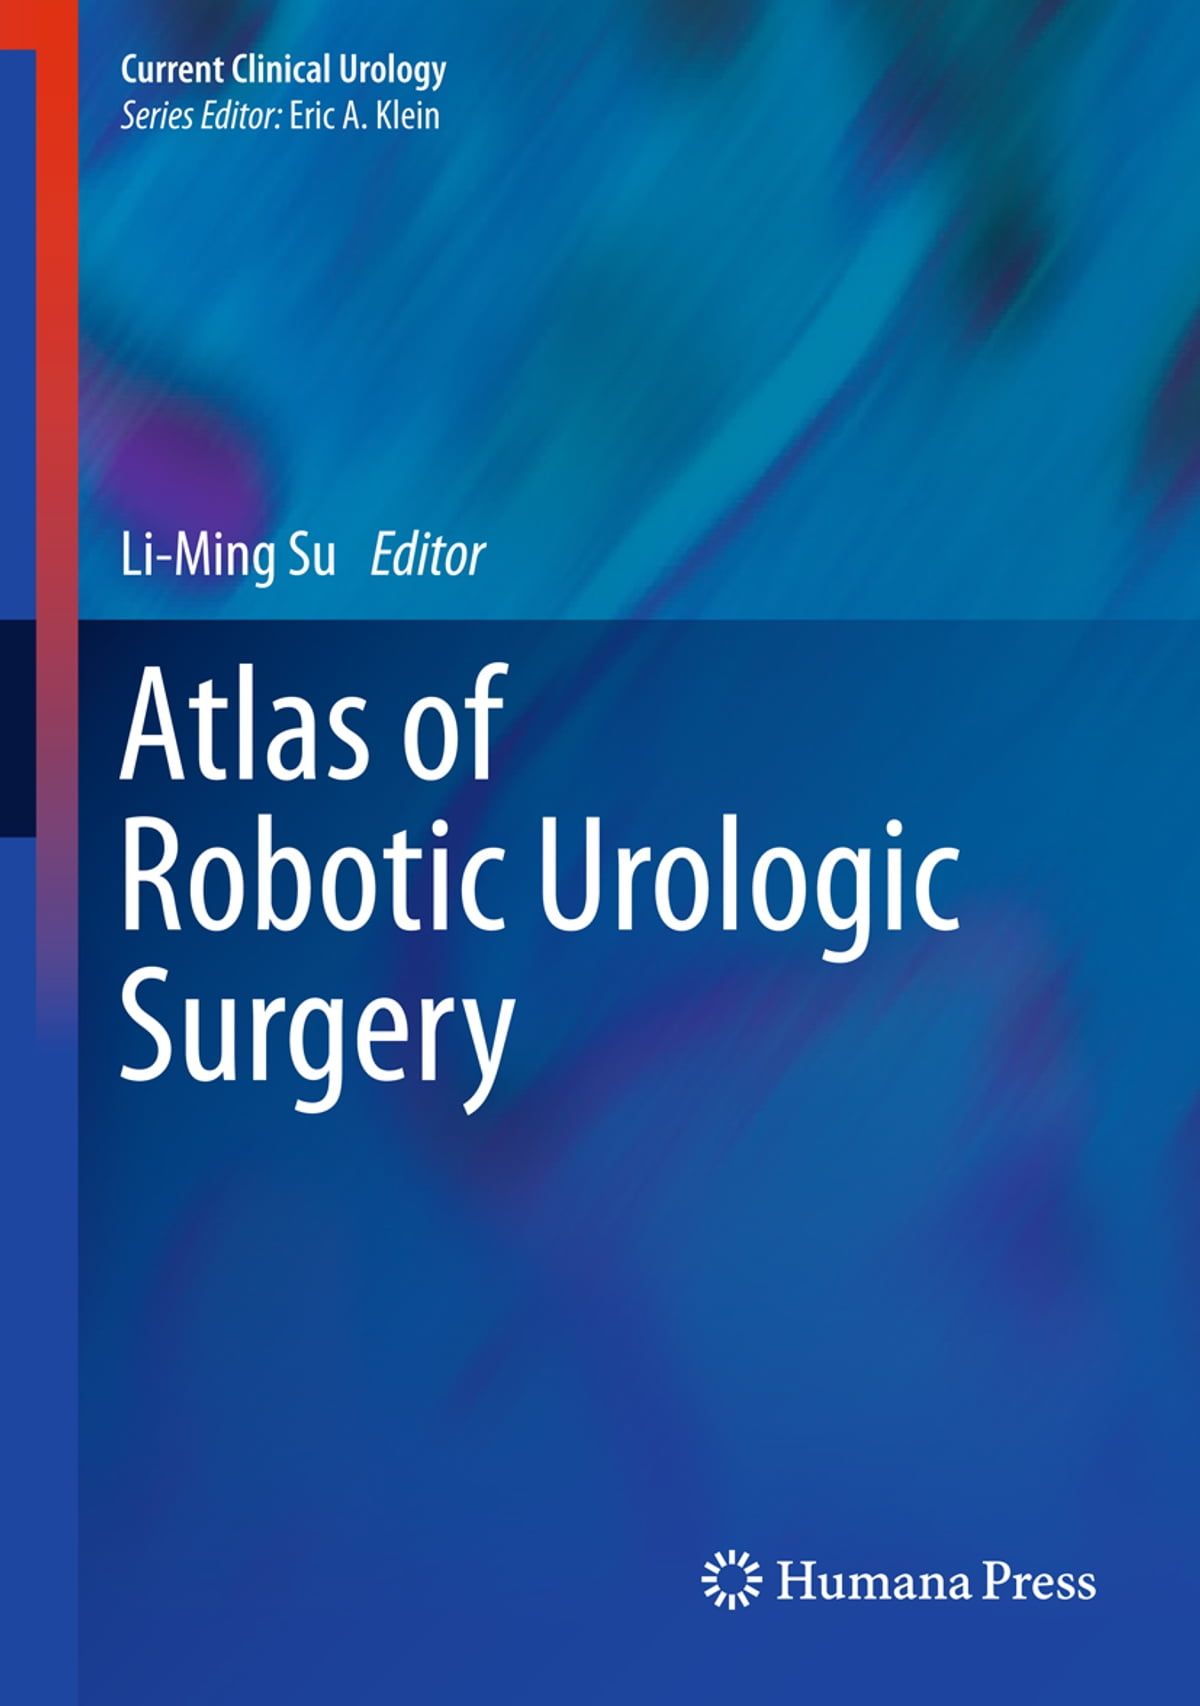 Atlas of Robotic Urologic Surgery eBook by - 9781607610267 | Rakuten Kobo